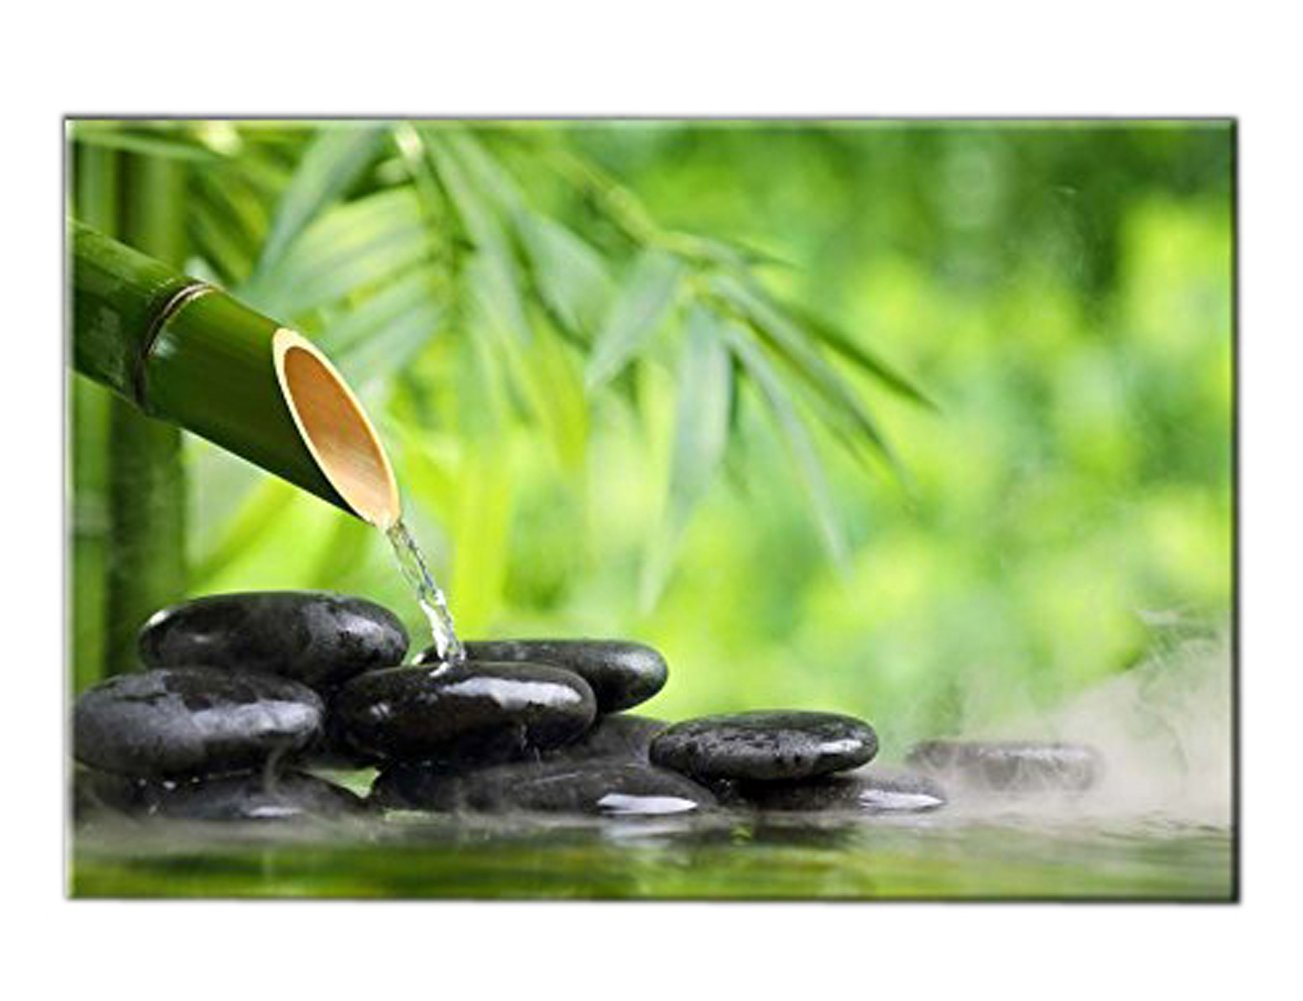 Green Spa Still Life With Bamboo Fountain And Zen Stone In Water Wall Art Painting The Picture Print On Canvas Botanical Pictures For Home Decor Decoration Gift Stretched By Wooden Frame Ready To Hang